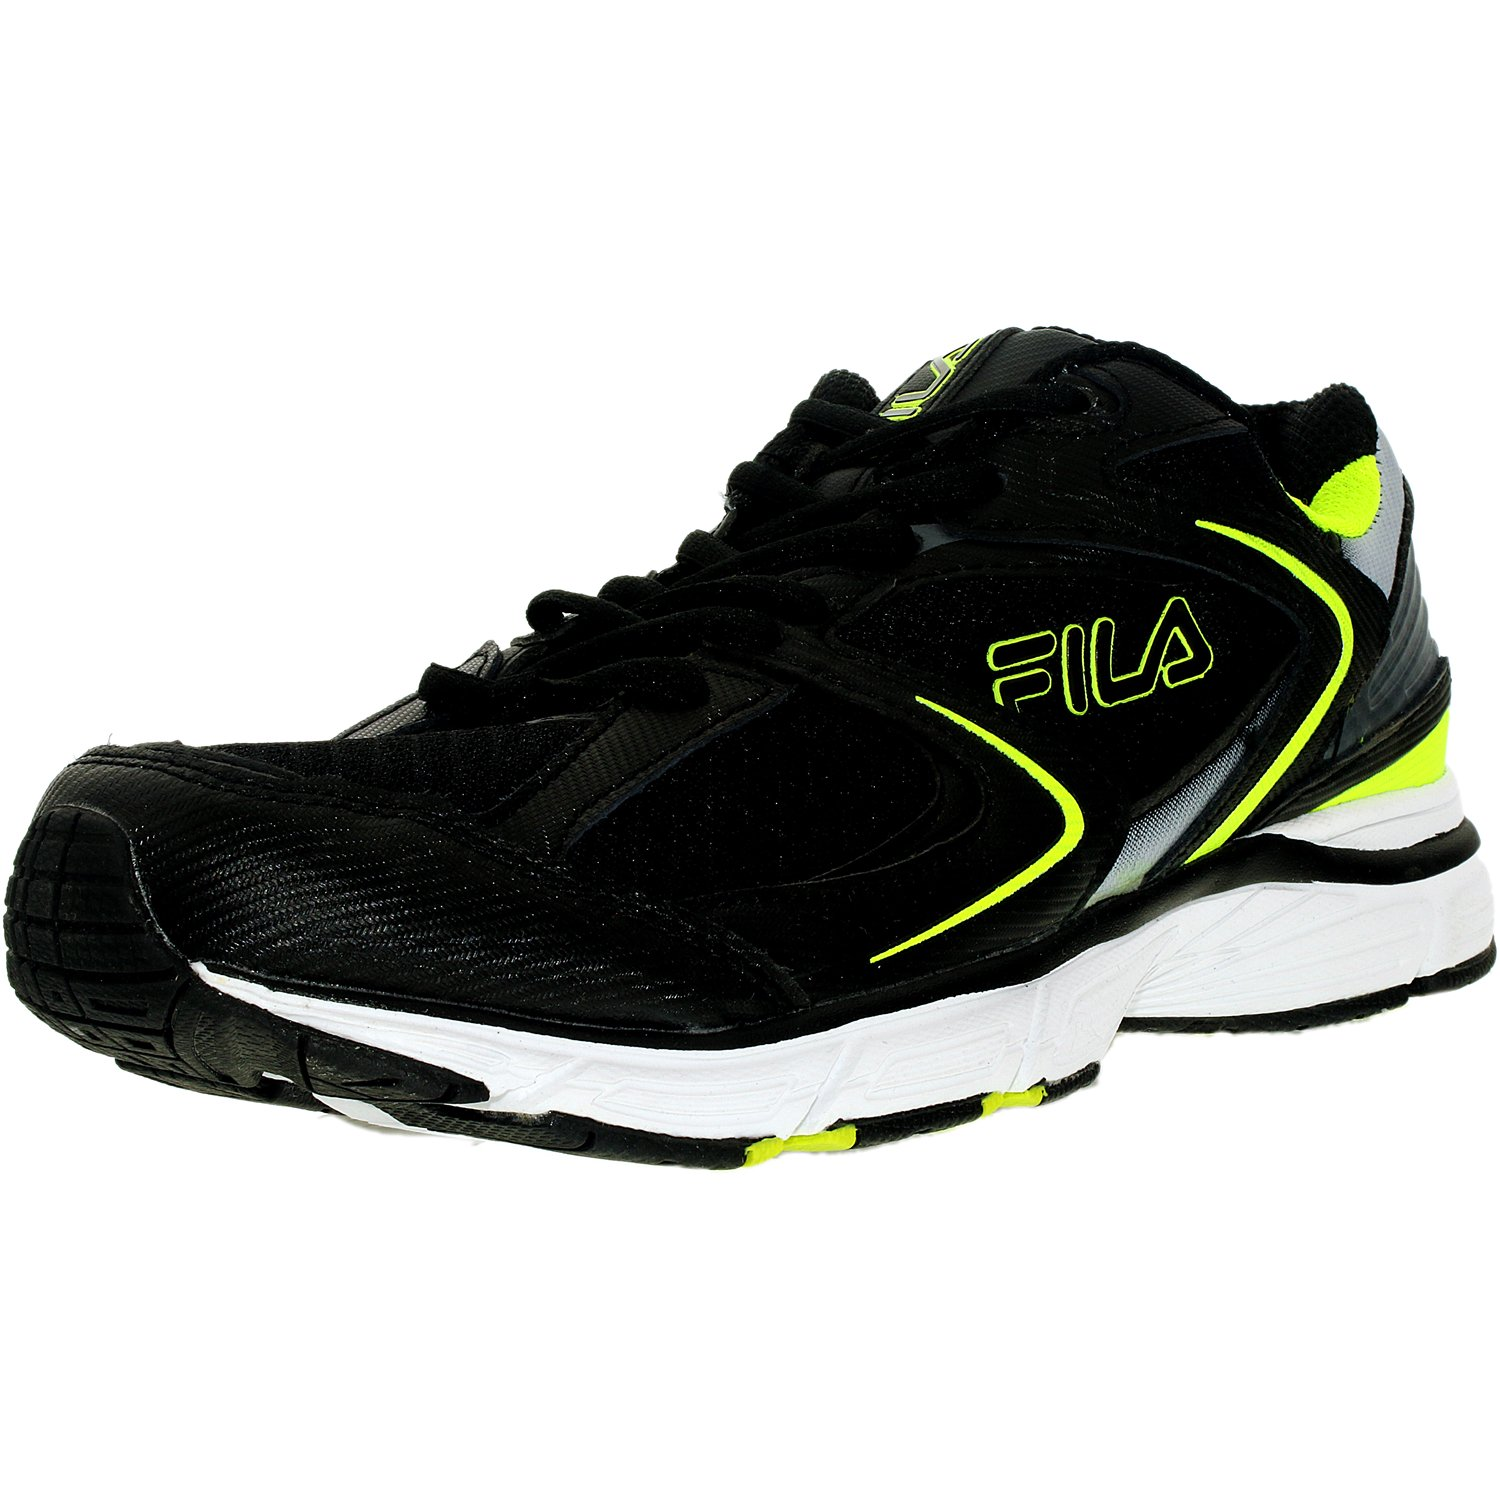 Fila Men's Simulate 3 Black Neon Green White Ankle-High Running Shoe 10.5M by Fila